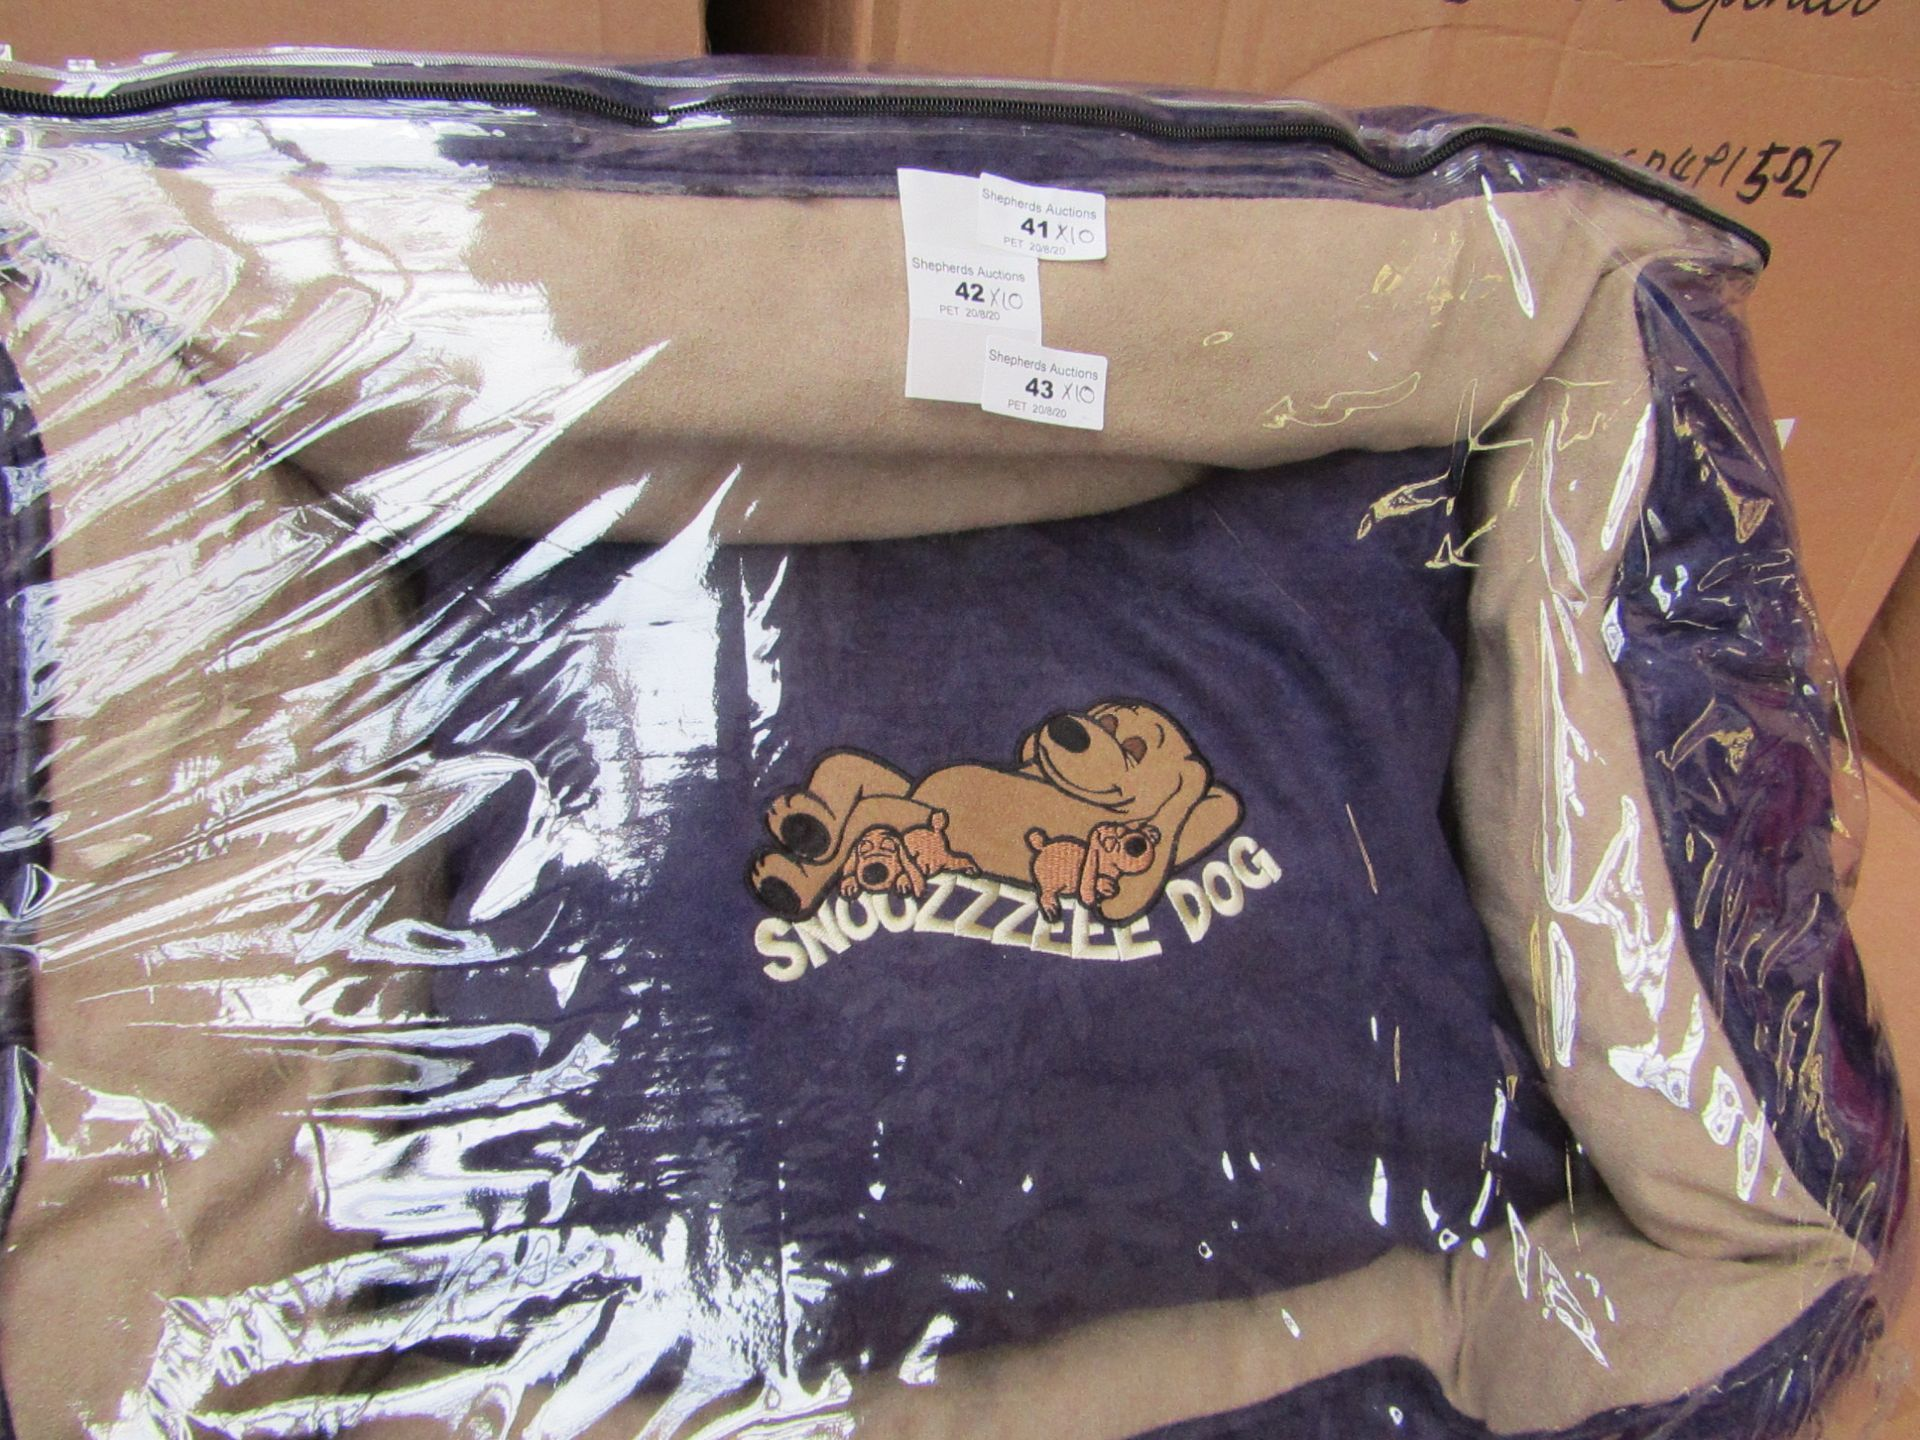 "10x Snoozzzeee Dog - Purple Sofa Dog Bed (23"") - All New & Packaged."